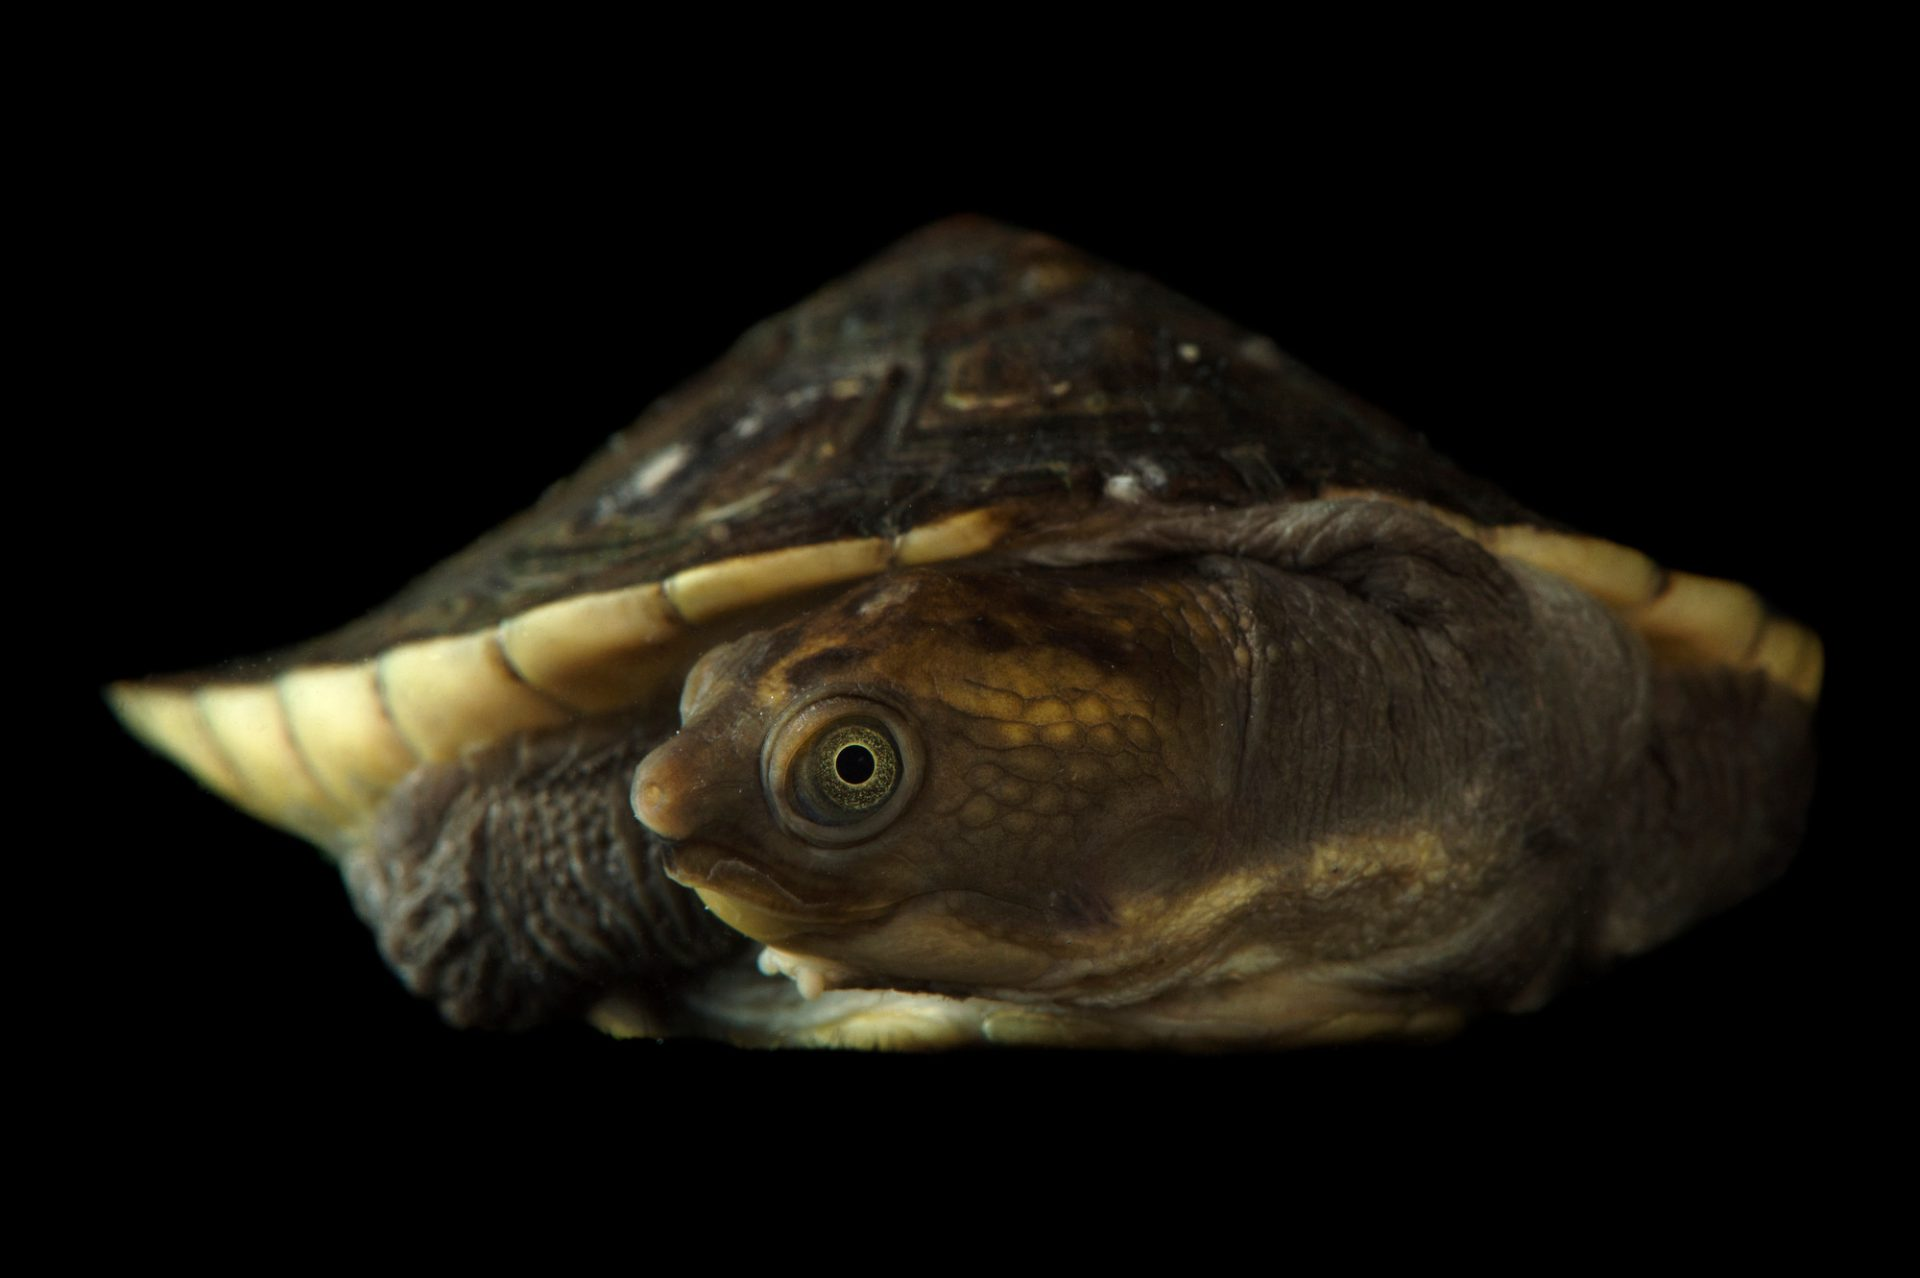 Picture of a Murray River turtle (Emydura macquarii) at the National Mississippi River Museum and Aquarium in Dubuque, Iowa.